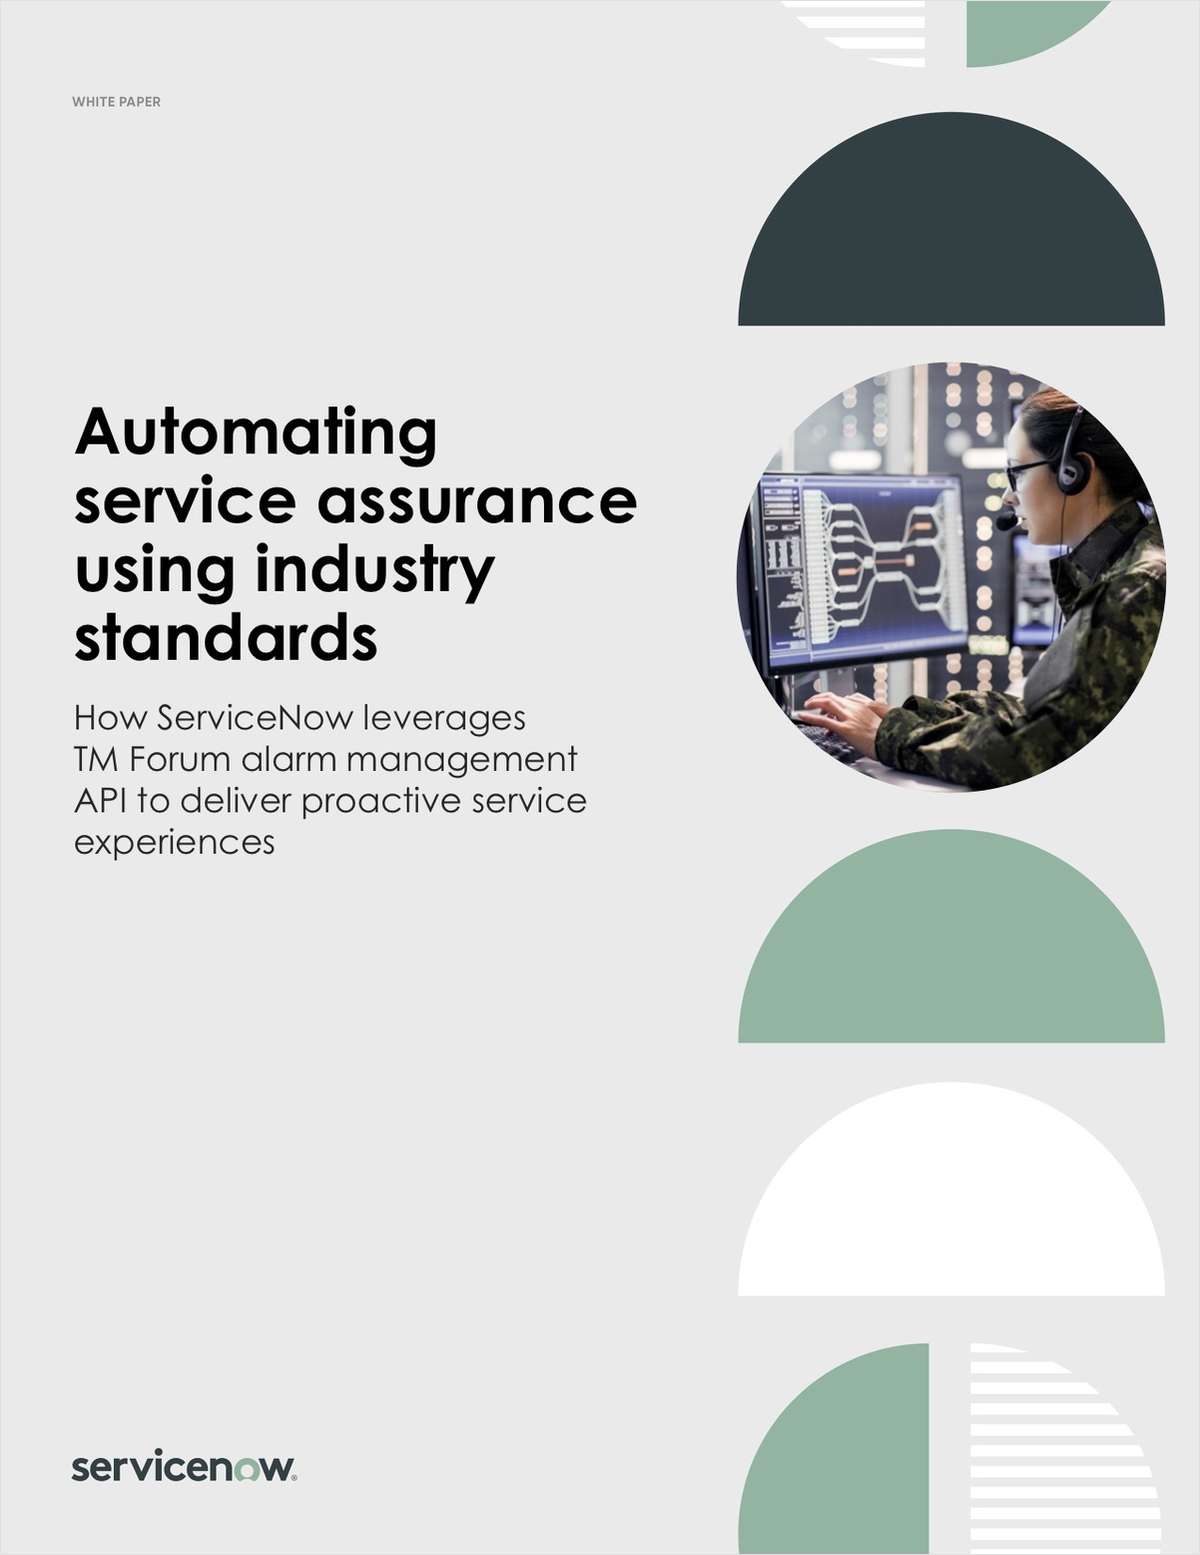 Automating service assurance using industry standards